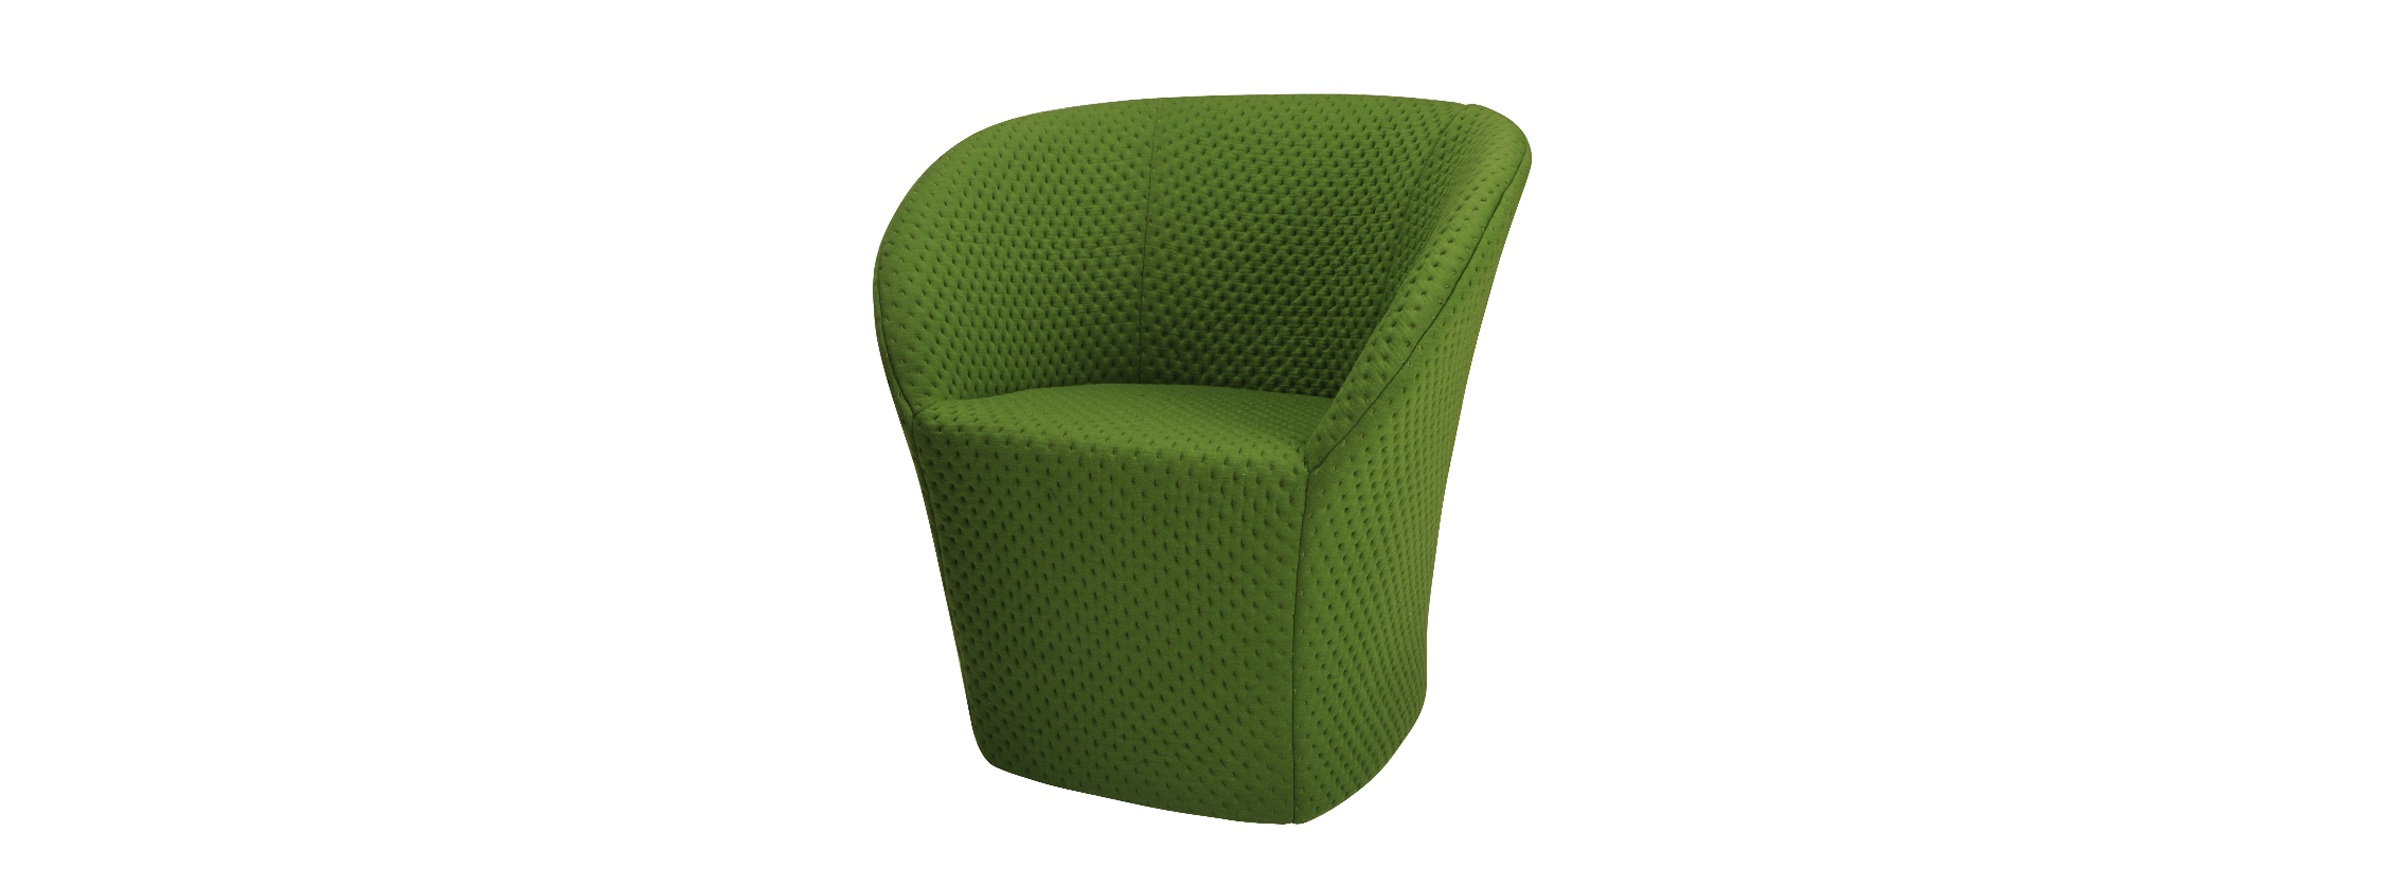 Désio-WALLACE-fauteuil-personnalisable-made-in-france-tissu-architecte